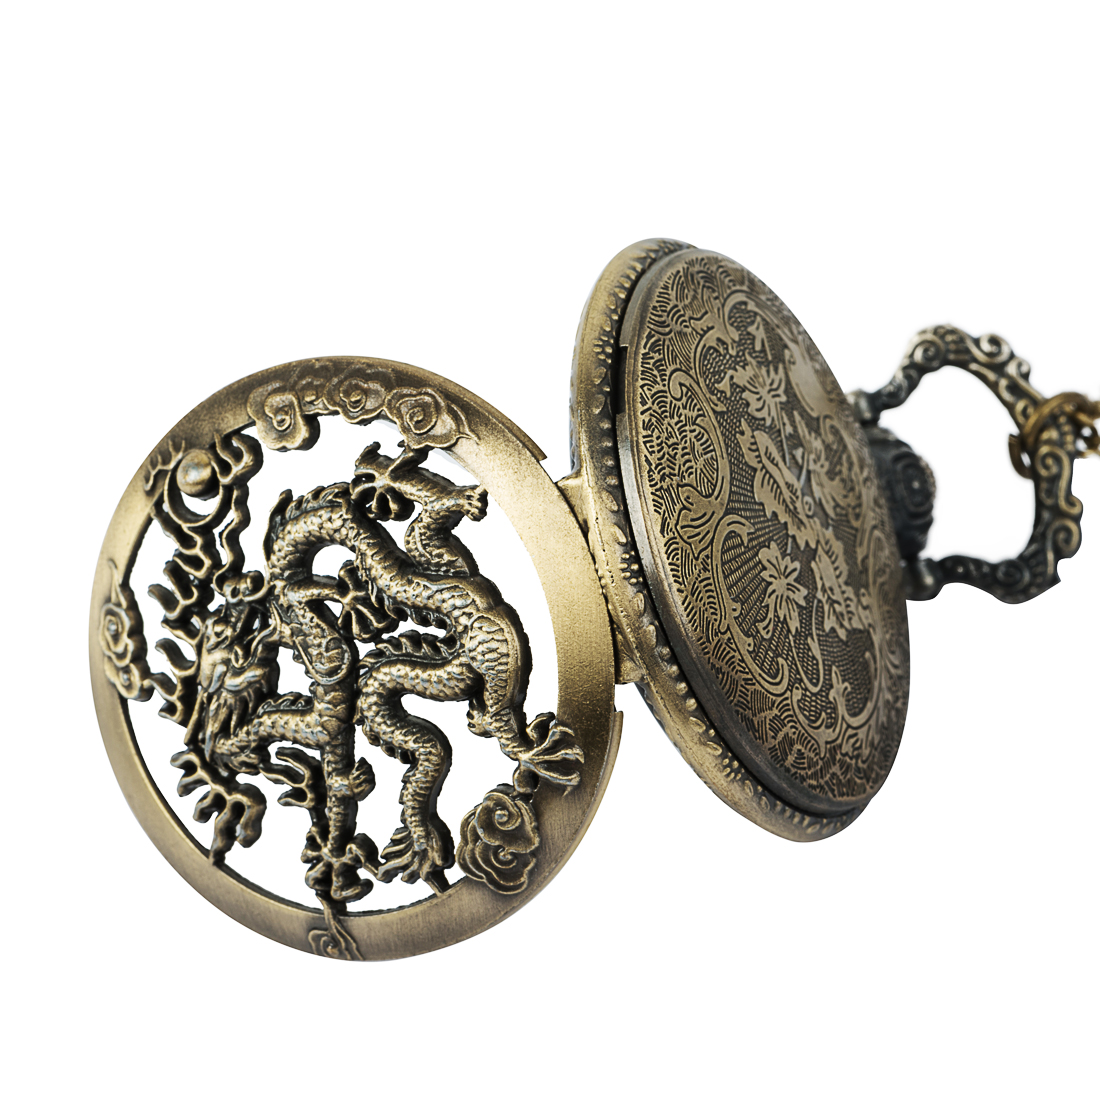 Pocket & Fob Watch Bronze Hollow Dragon Pocket Watch Chains Pendant Necklace Chinese Totem Pocket Watches for Men/Women